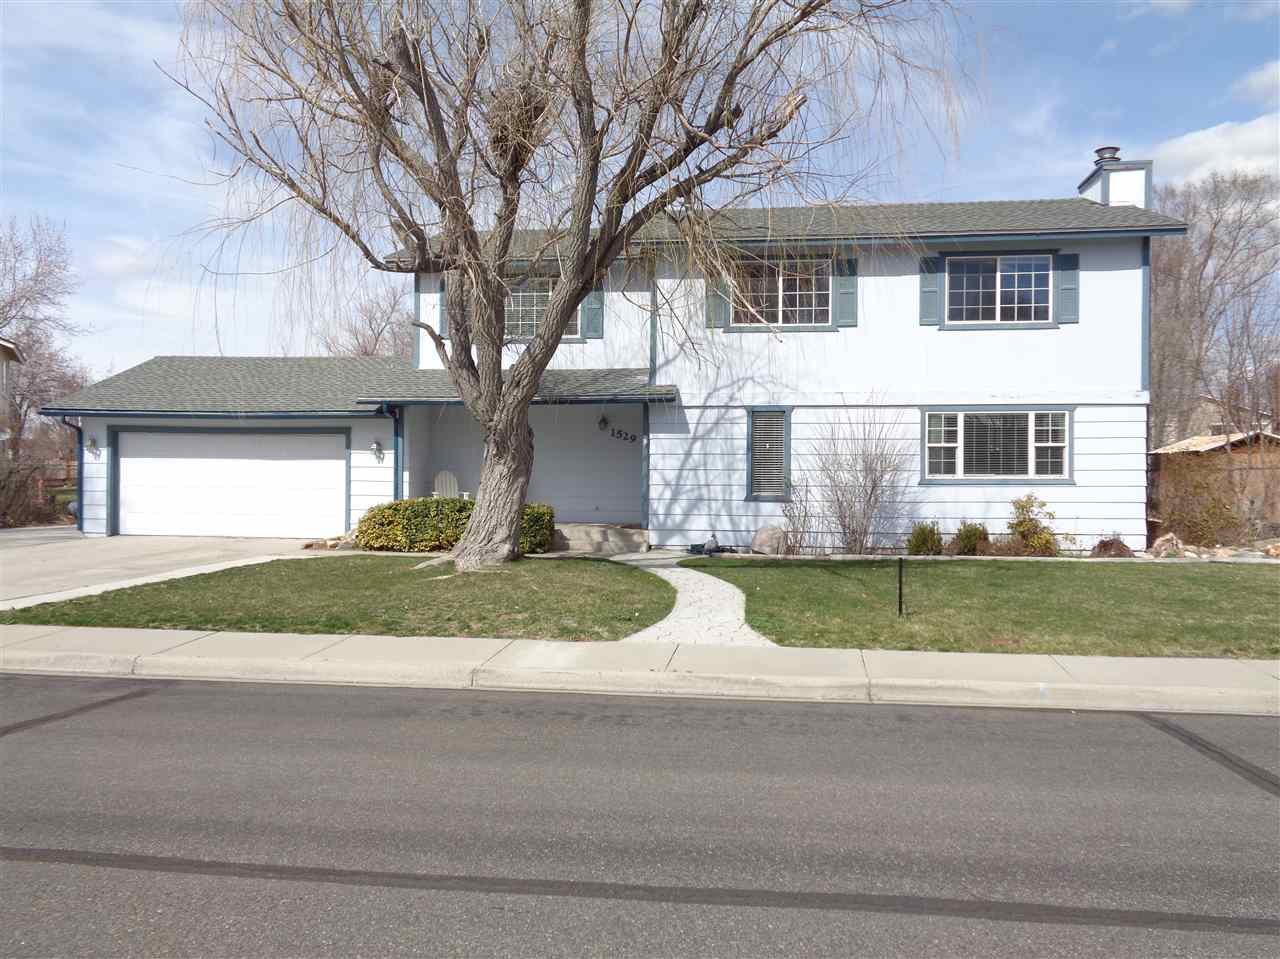 Single Family Home for Active at 1529 Hussman Avenue 1529 Hussman Avenue Gardnerville, Nevada 89410 United States